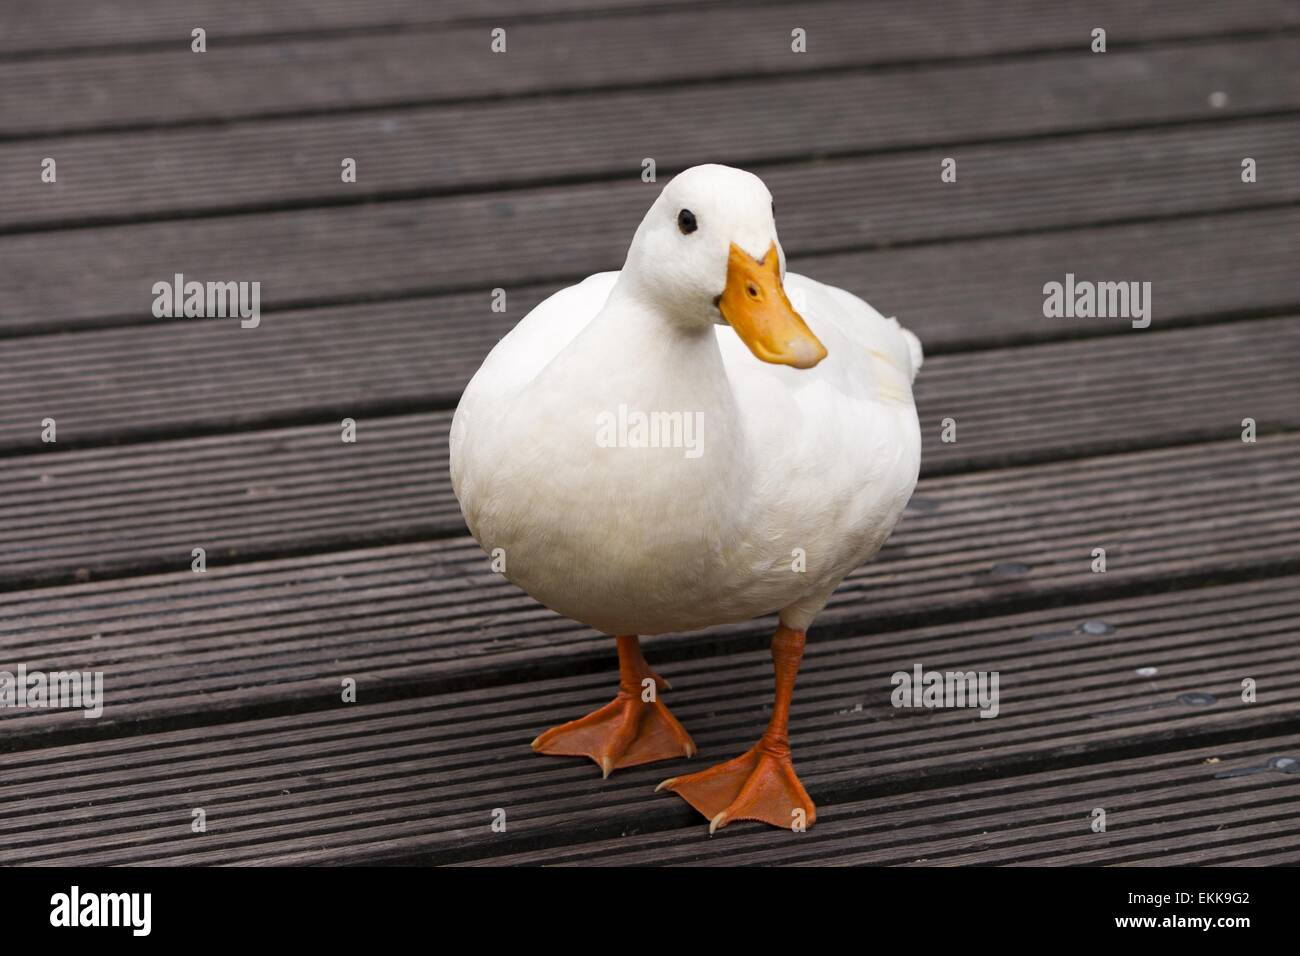 White duck on a wooden platform - Stock Image